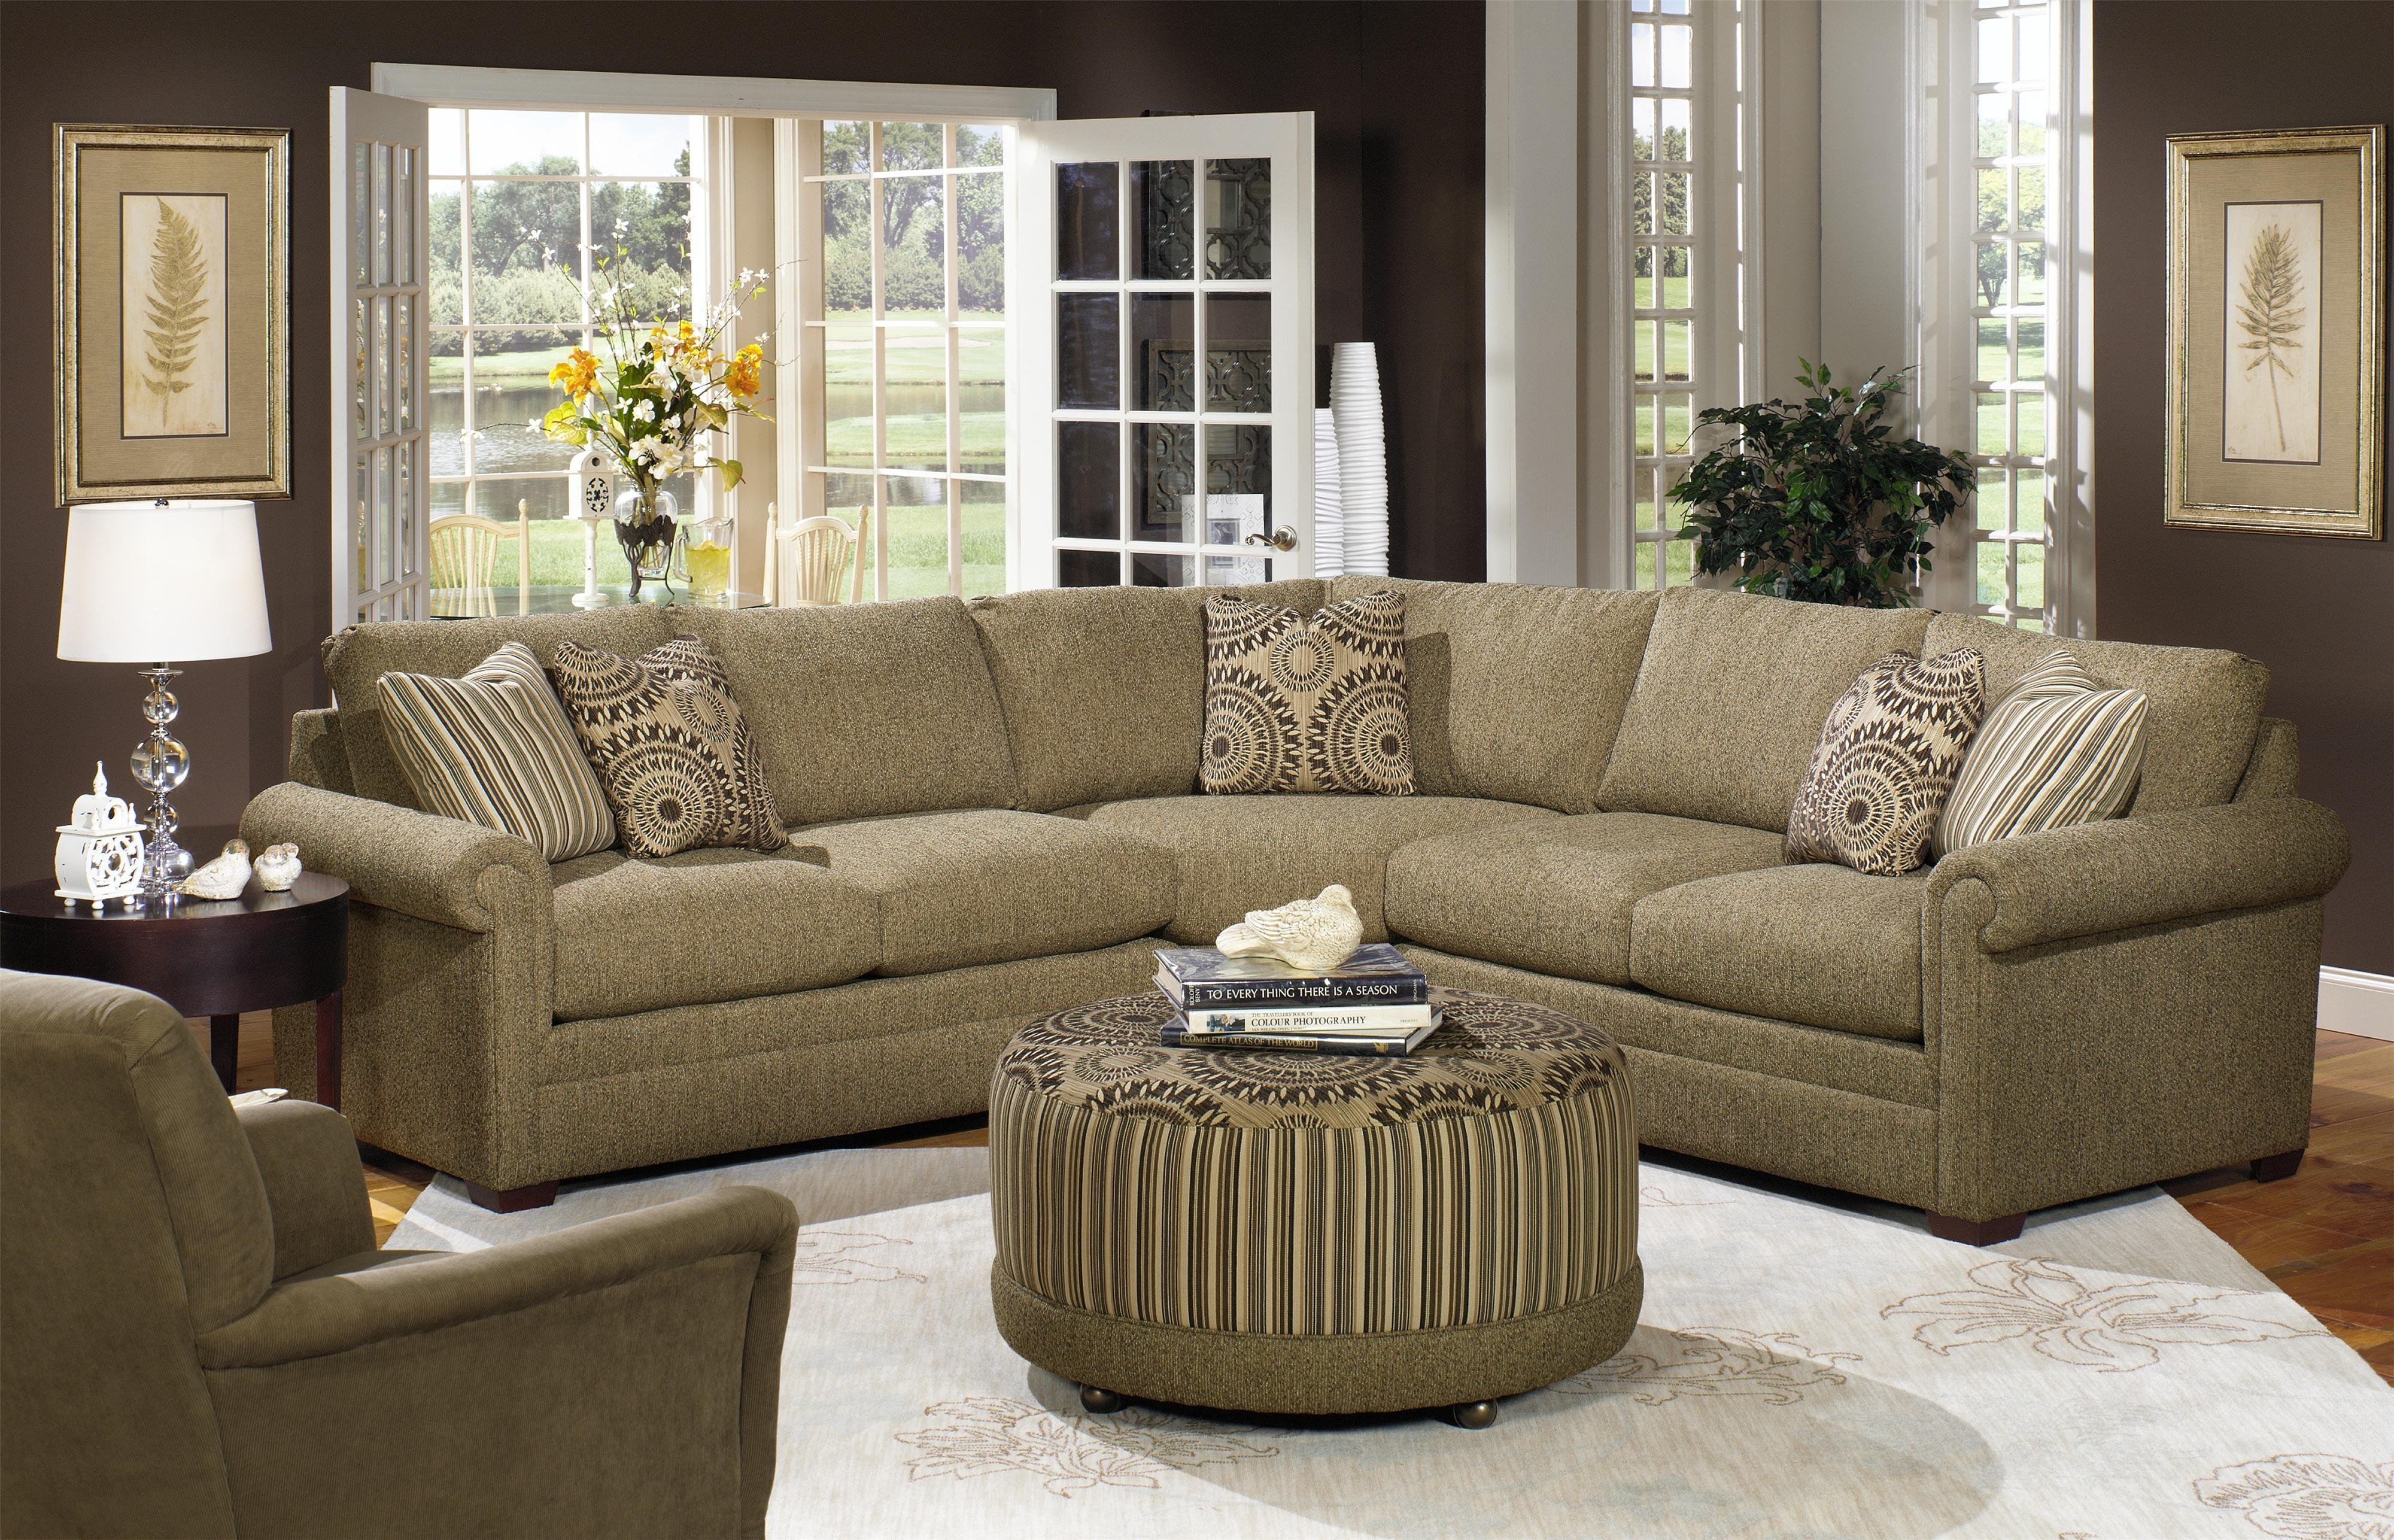 15 s Craftmaster Sectional Sofa